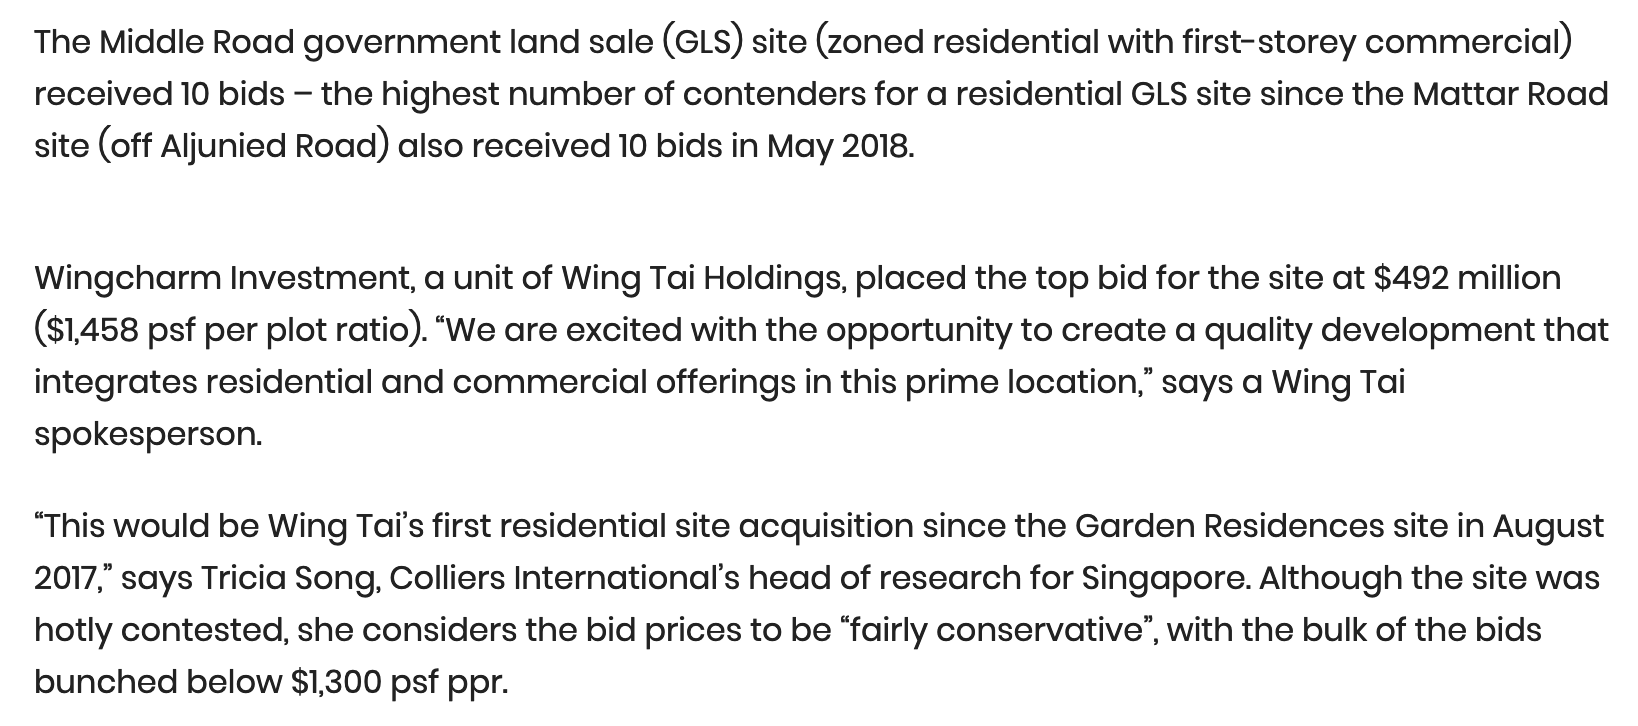 wing-tai-makes-492-mil-bid-for-middle-road-site-1